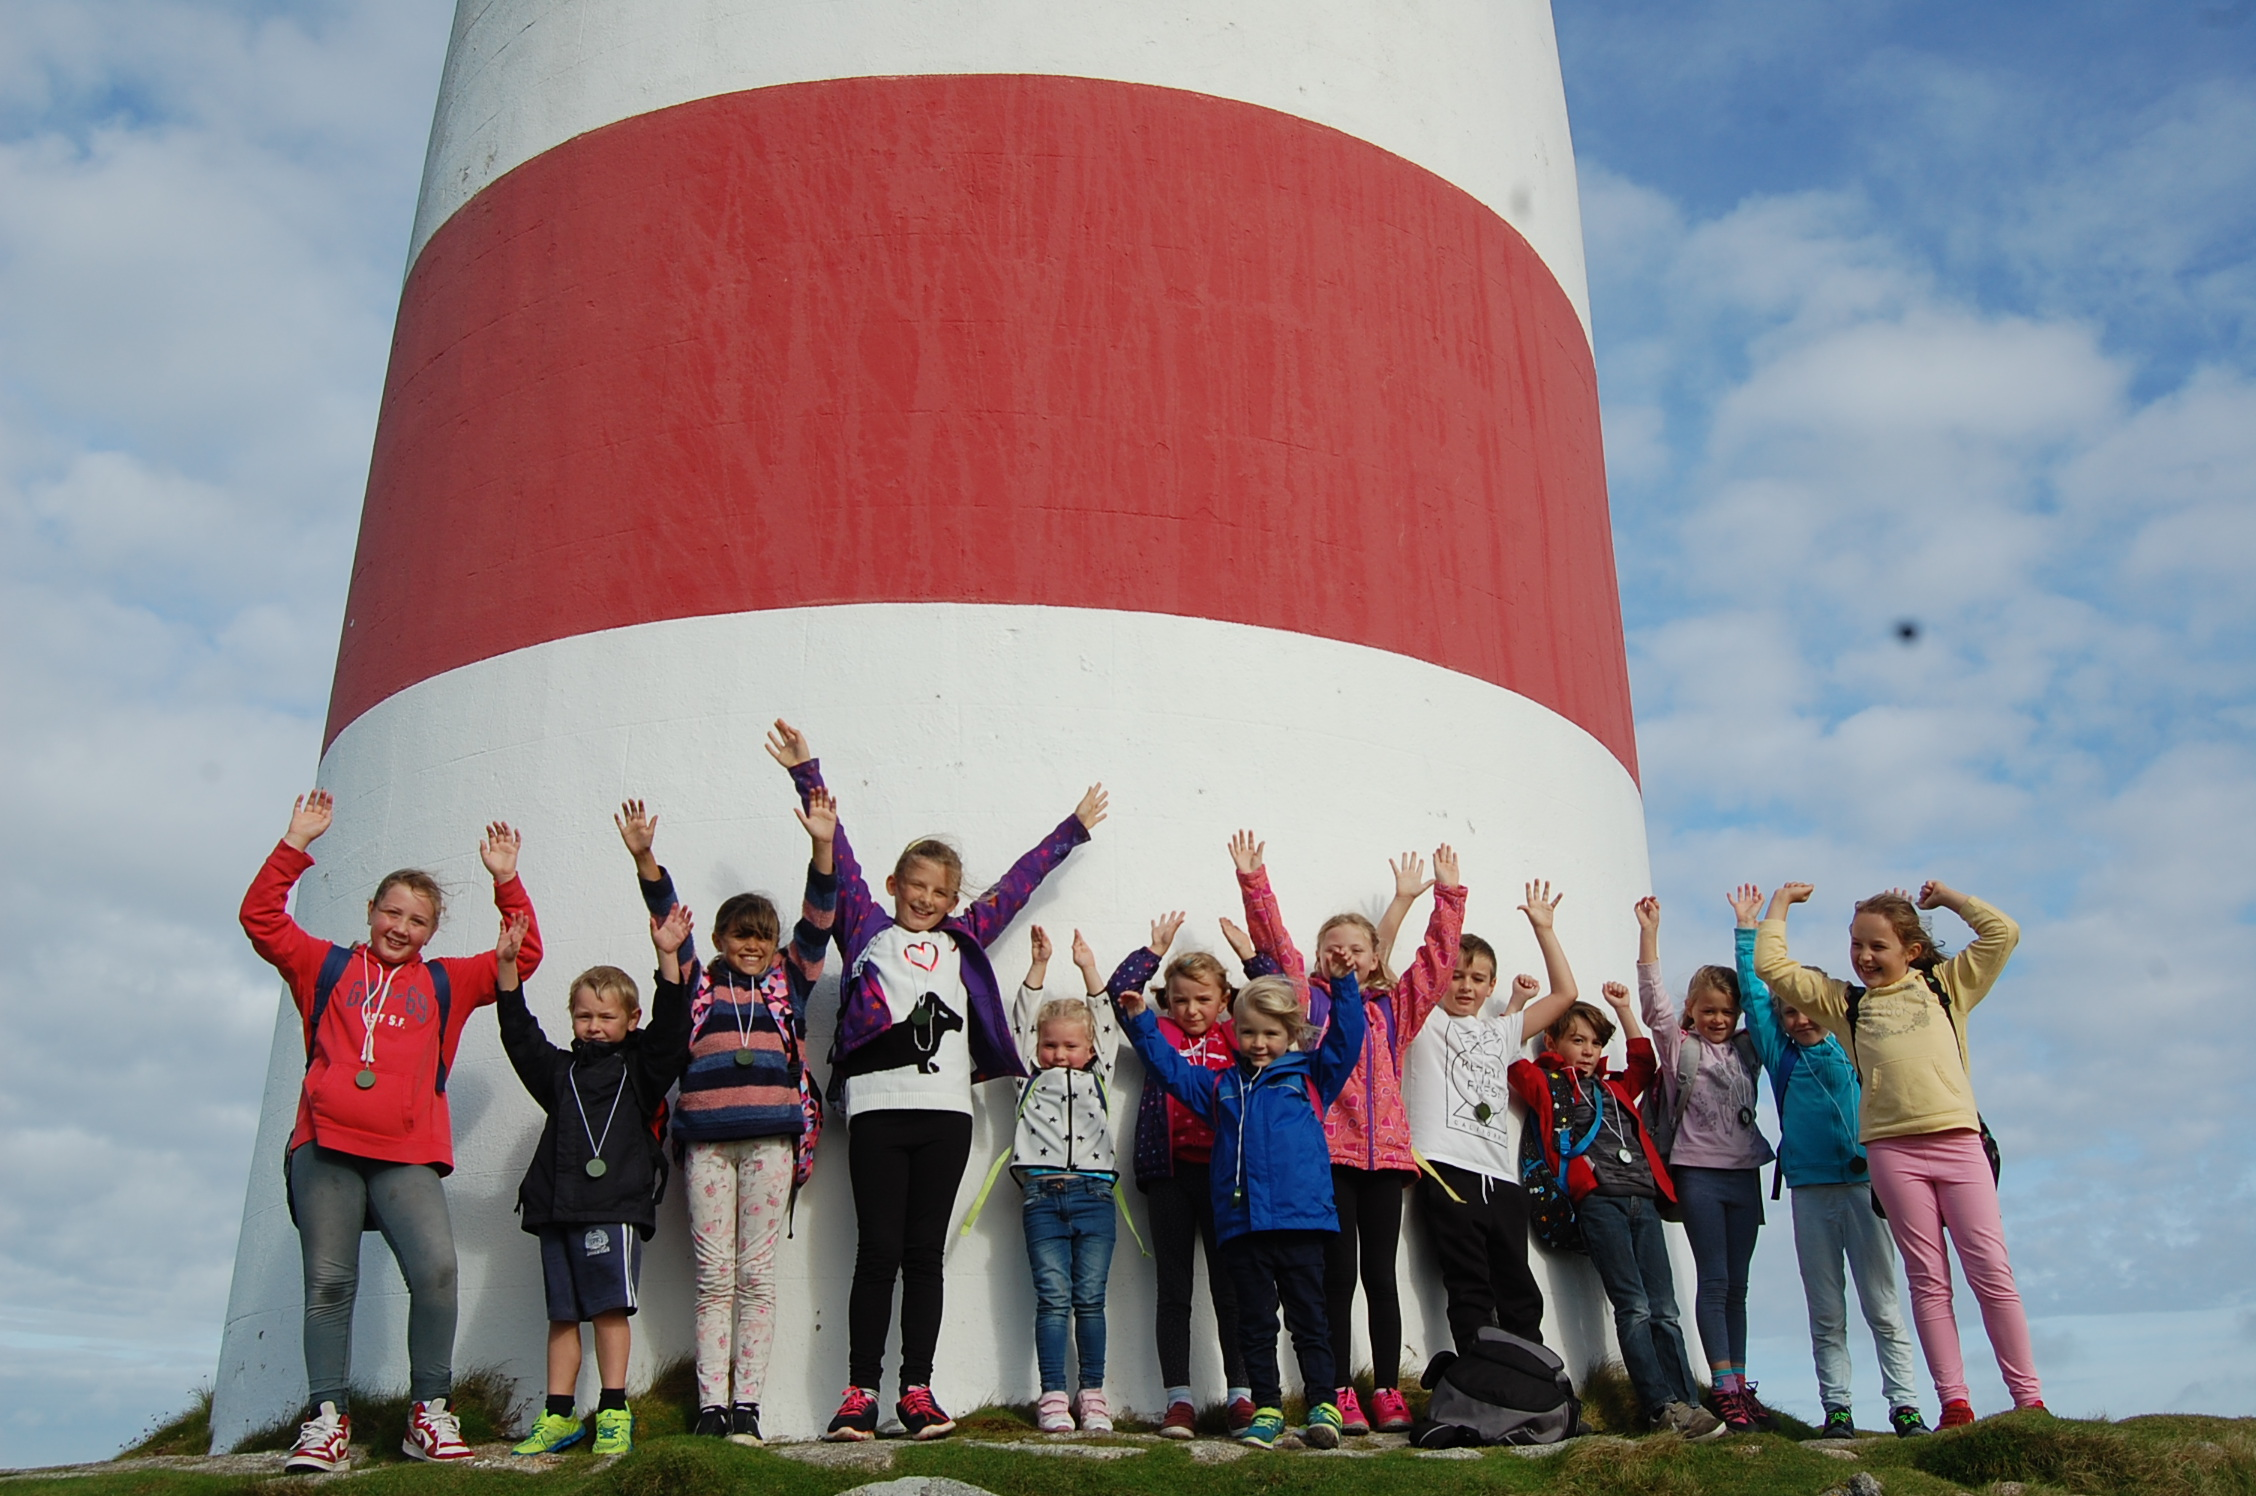 Students from the Five Islands School Tresco and Bryher base at the Daymark on St Martin's. Image courtesy of the Five Islands School.